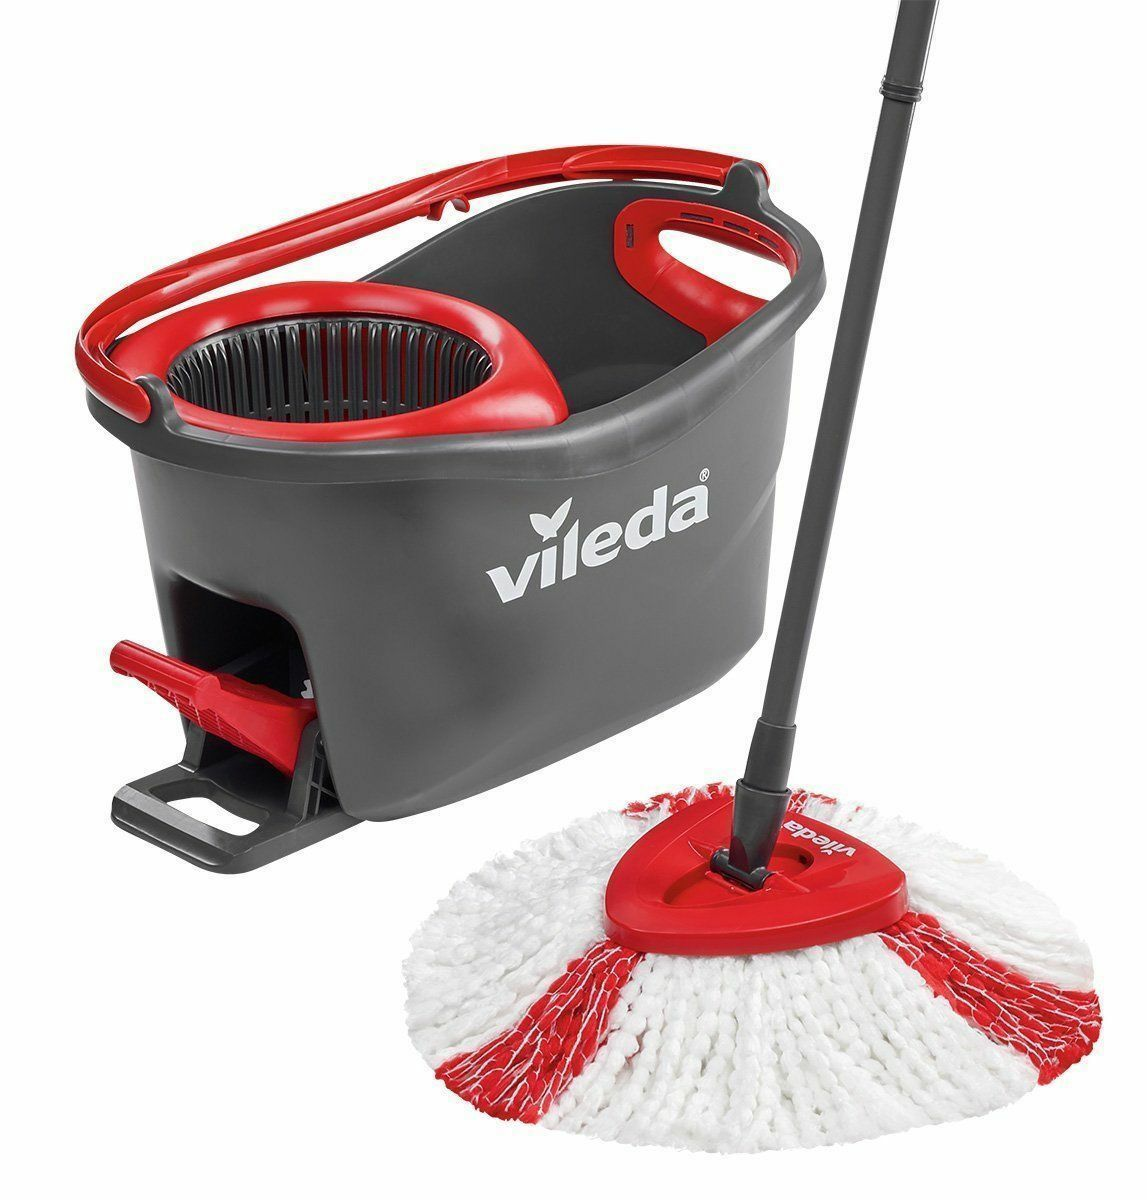 vileda turbo easy wring and clean turbo microfibre spin mop and bucket set picclick uk. Black Bedroom Furniture Sets. Home Design Ideas